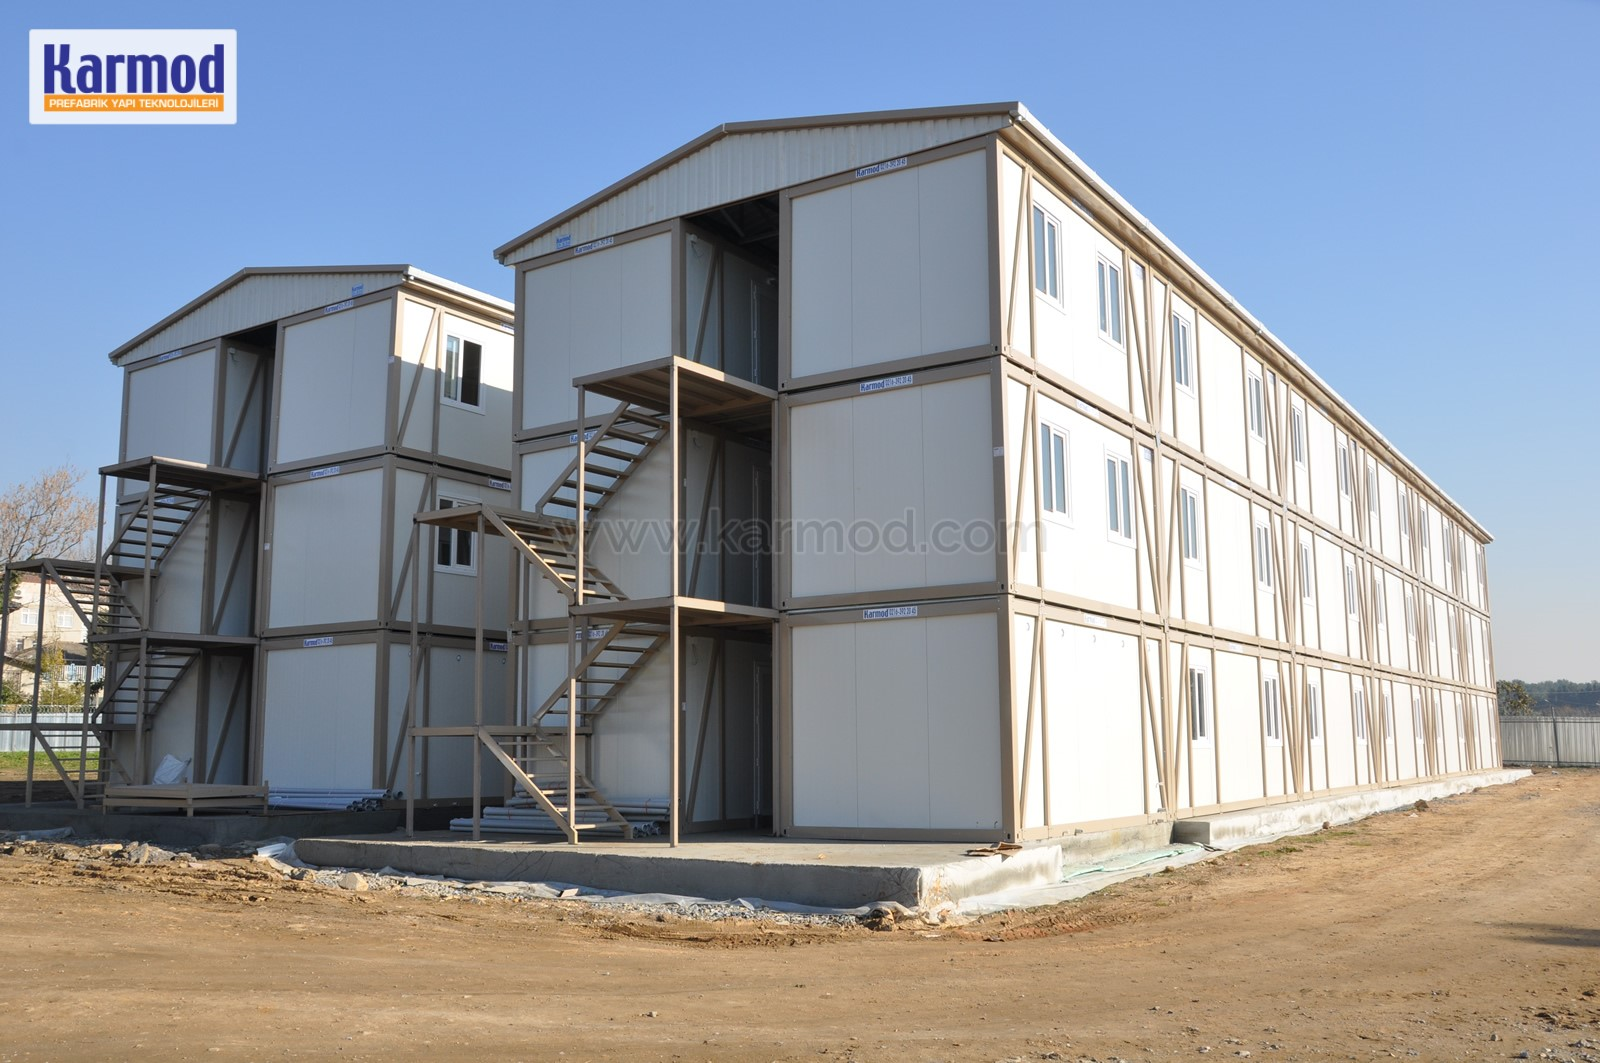 Containerised camp site buildings